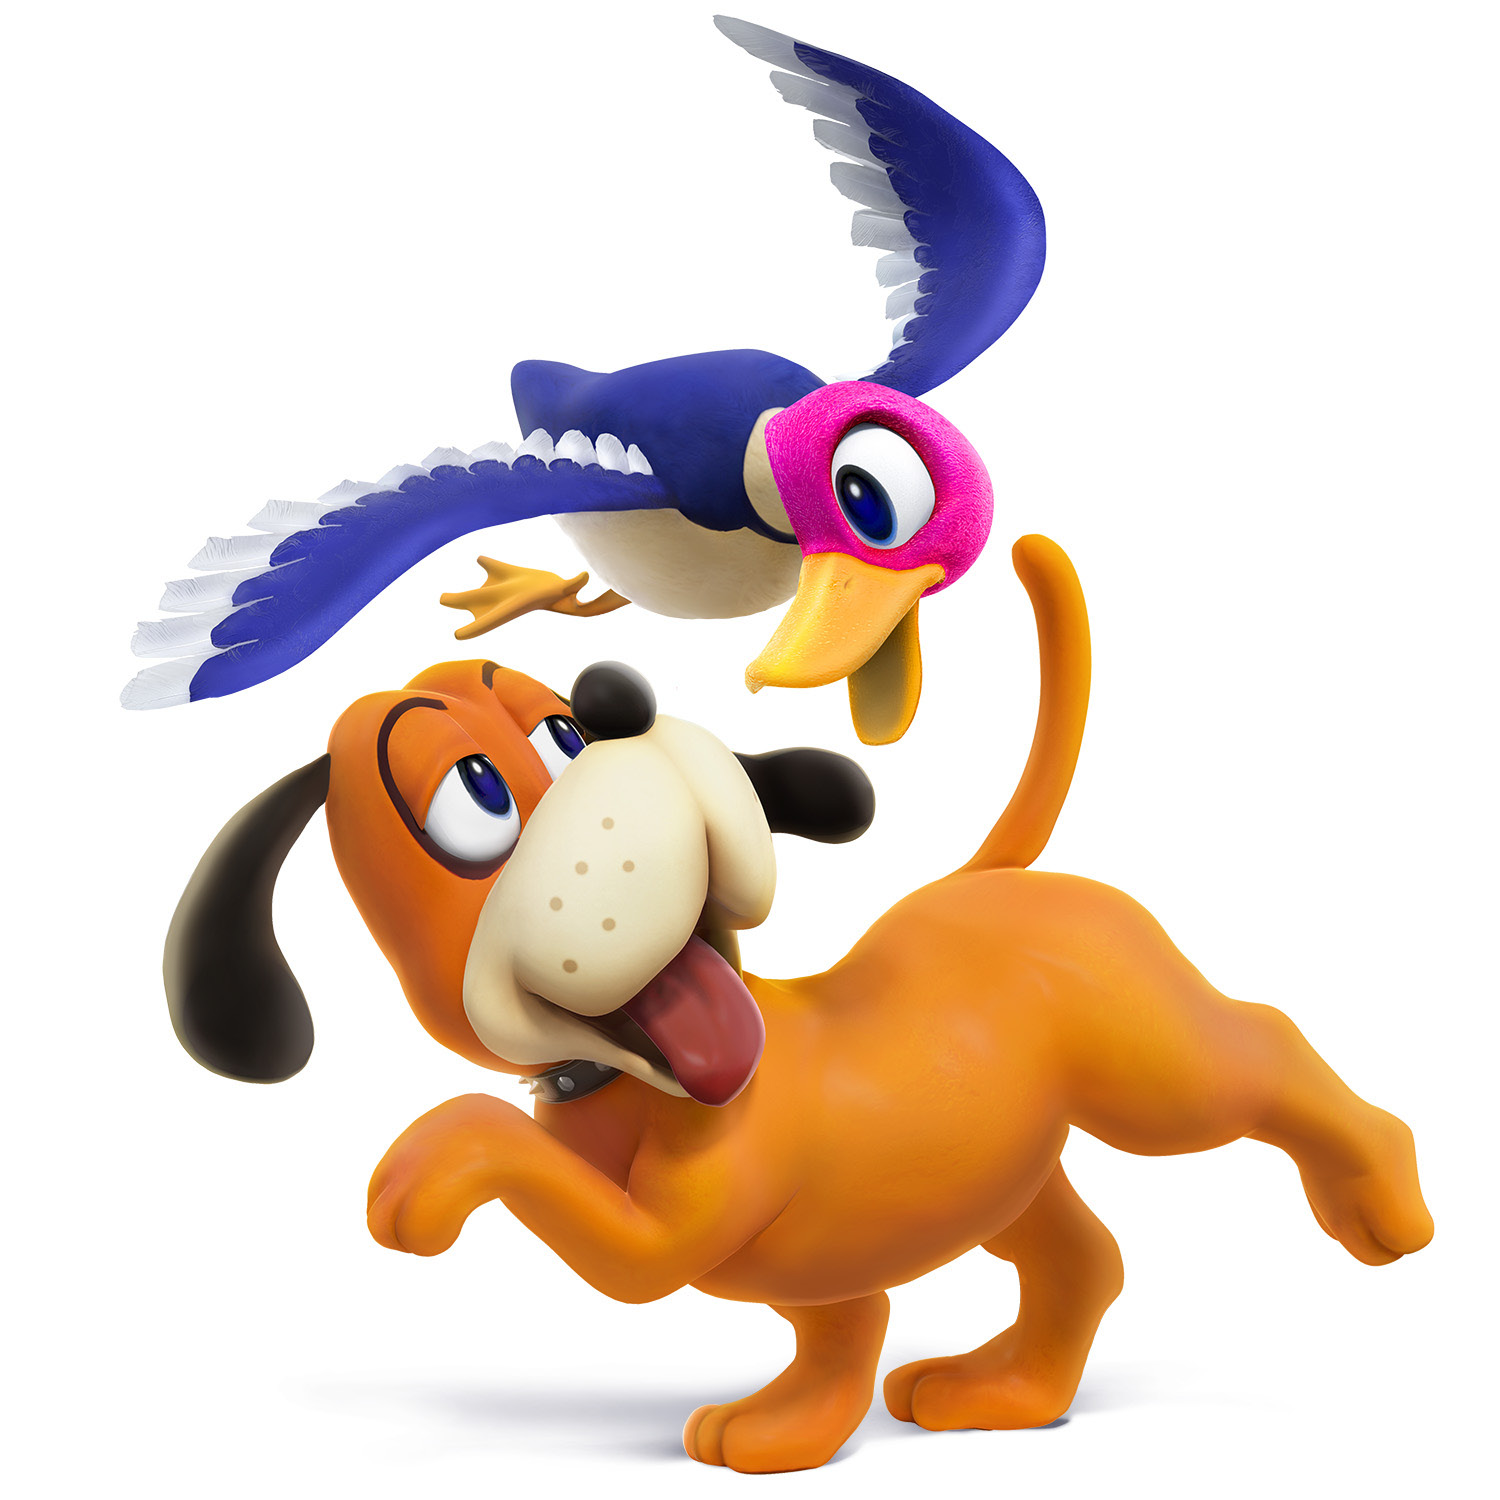 Squishy Duck Super Mario Maker 4 : Predict which amiibo will and wonot  have supports : amiibo